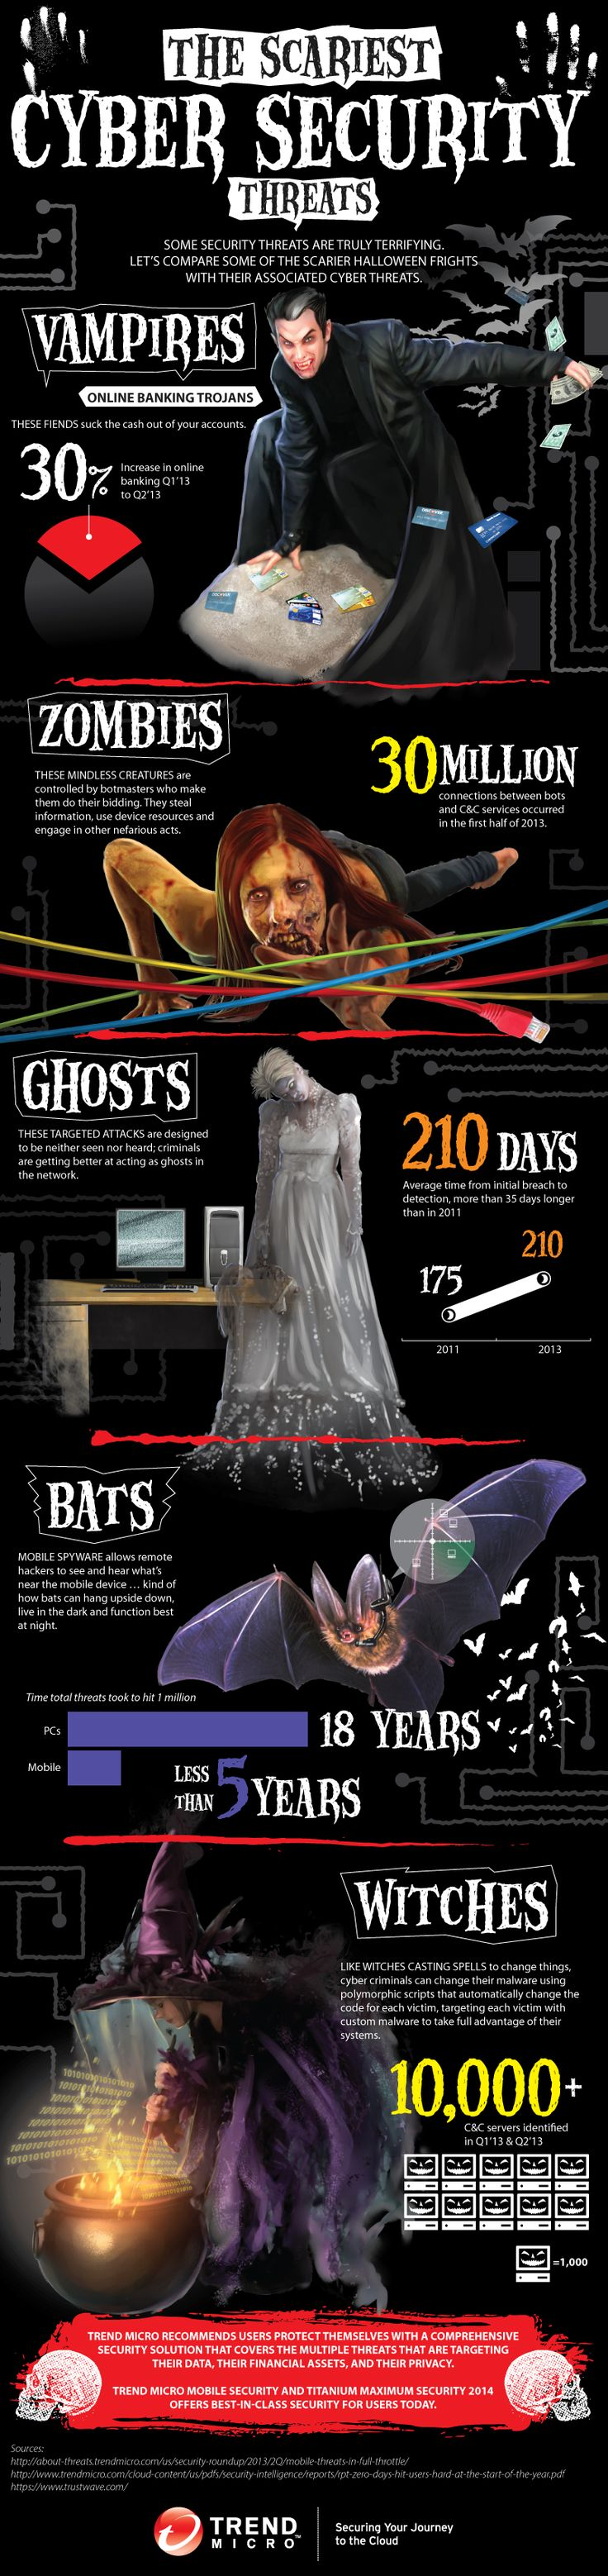 The Scariest Cyber Security threats